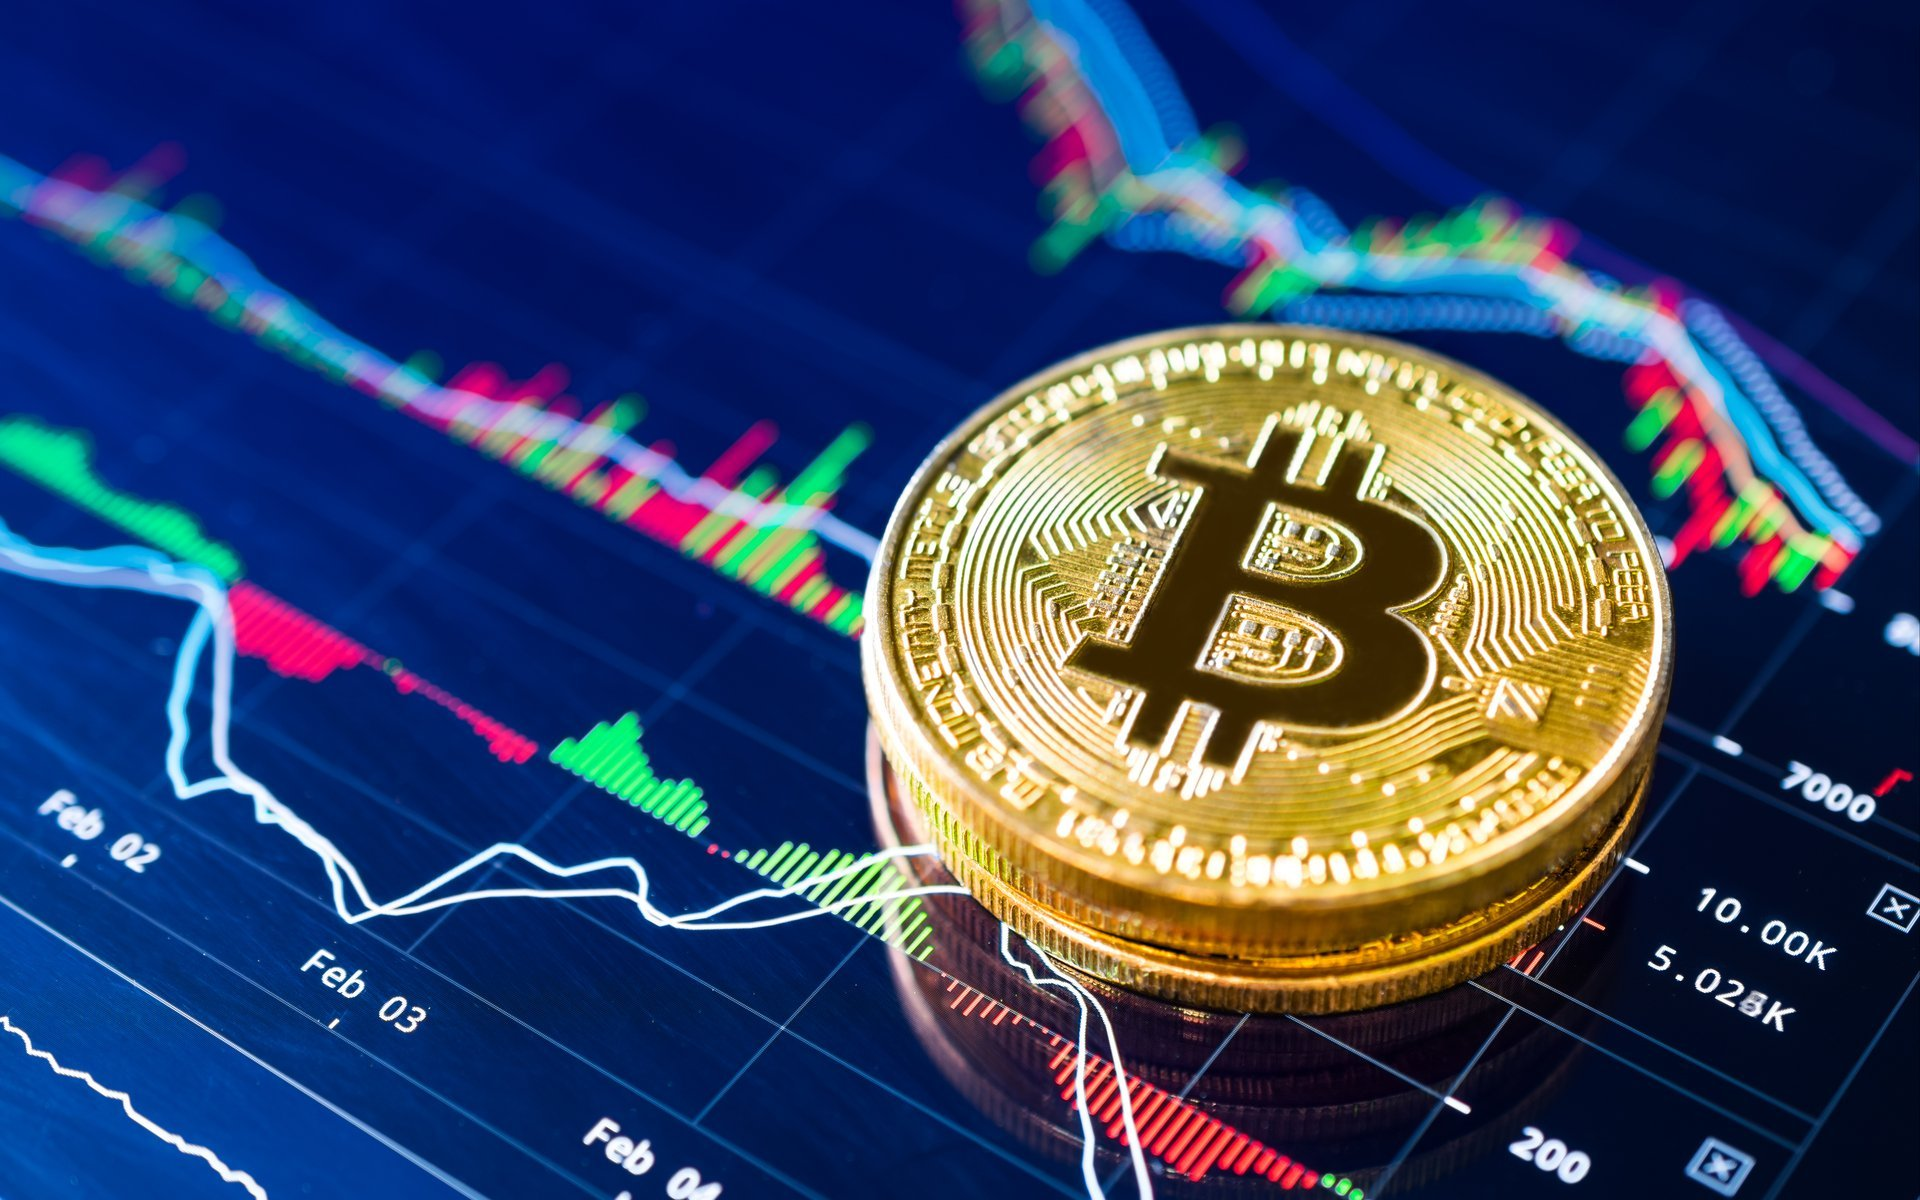 Bitcoin hits an all time high of ksh.934,500